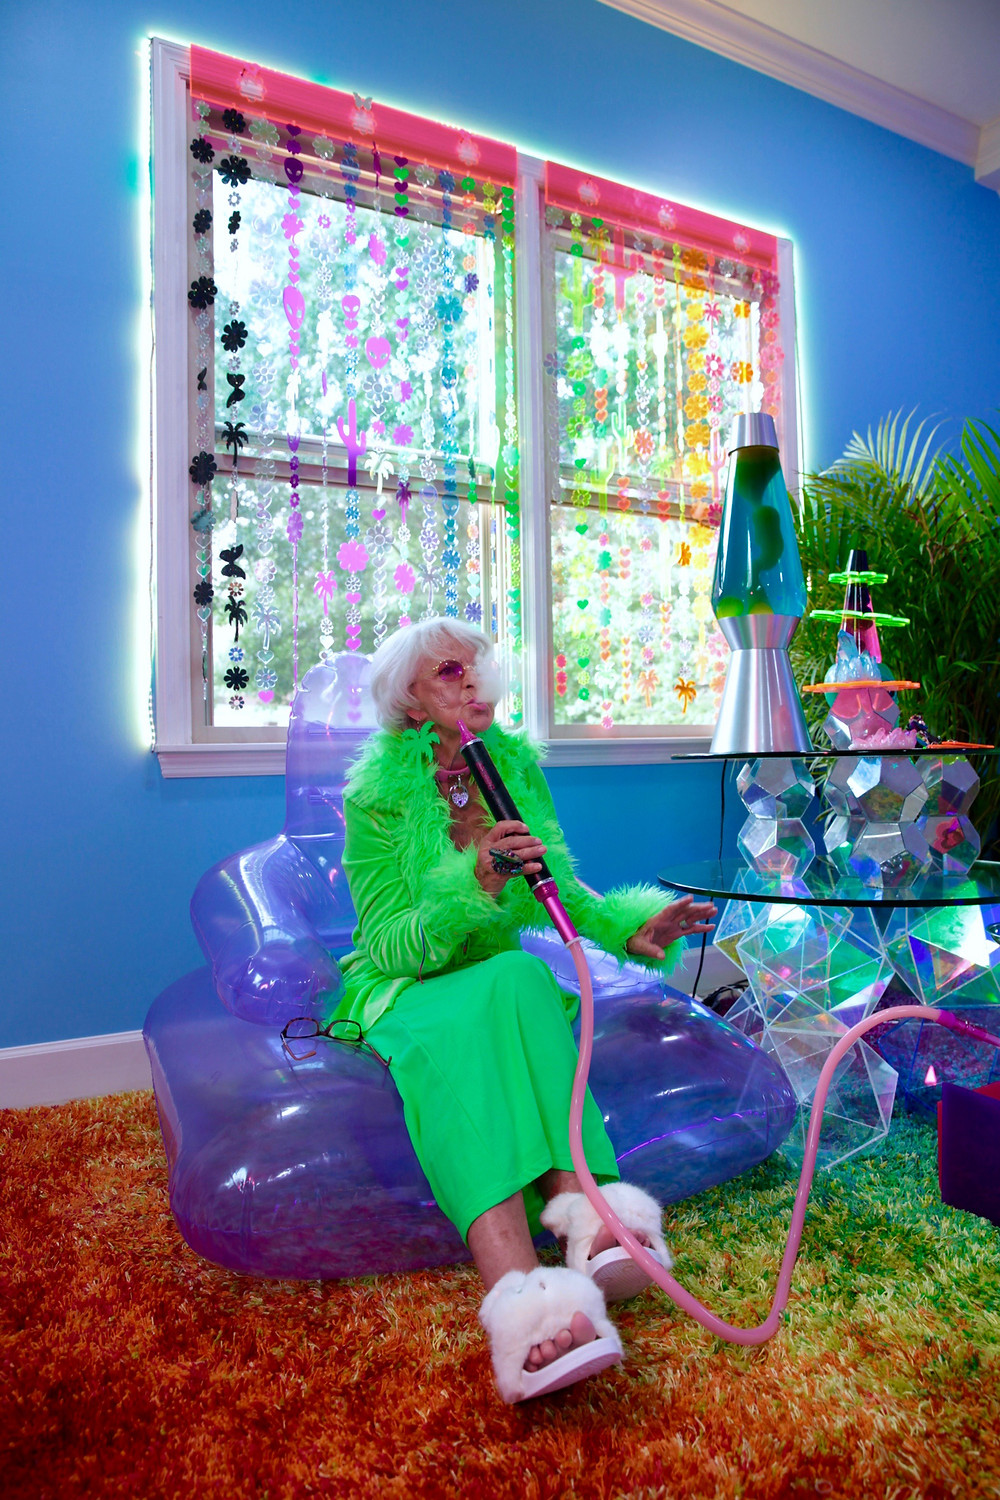 marina fini, los angeles, plexiglas, flower, aliens, happy happie, wicked hippie,  jewelry, psychedelic, colors, chakras, crystals, goddessphere, motelscape, venus, installations, fine art, interview, howl magazine, new york, stripper, lgbtq, queer, body positive, sexuality, interview, baddie winkle,